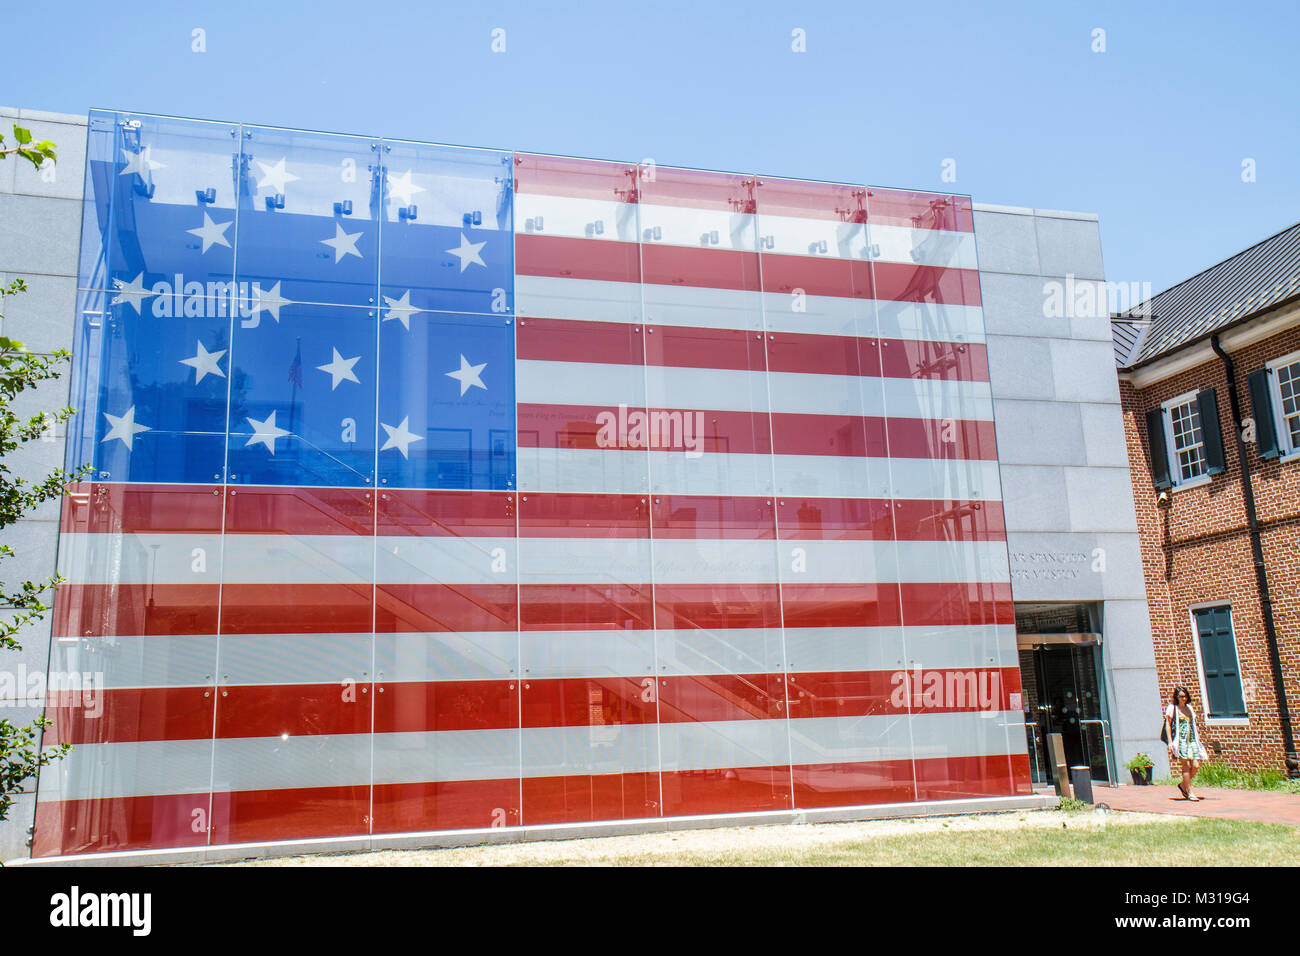 Baltimore Maryland East Pratt Street Star Spangled Banner Flag House building facade red white and blue woman walking Stock Photo